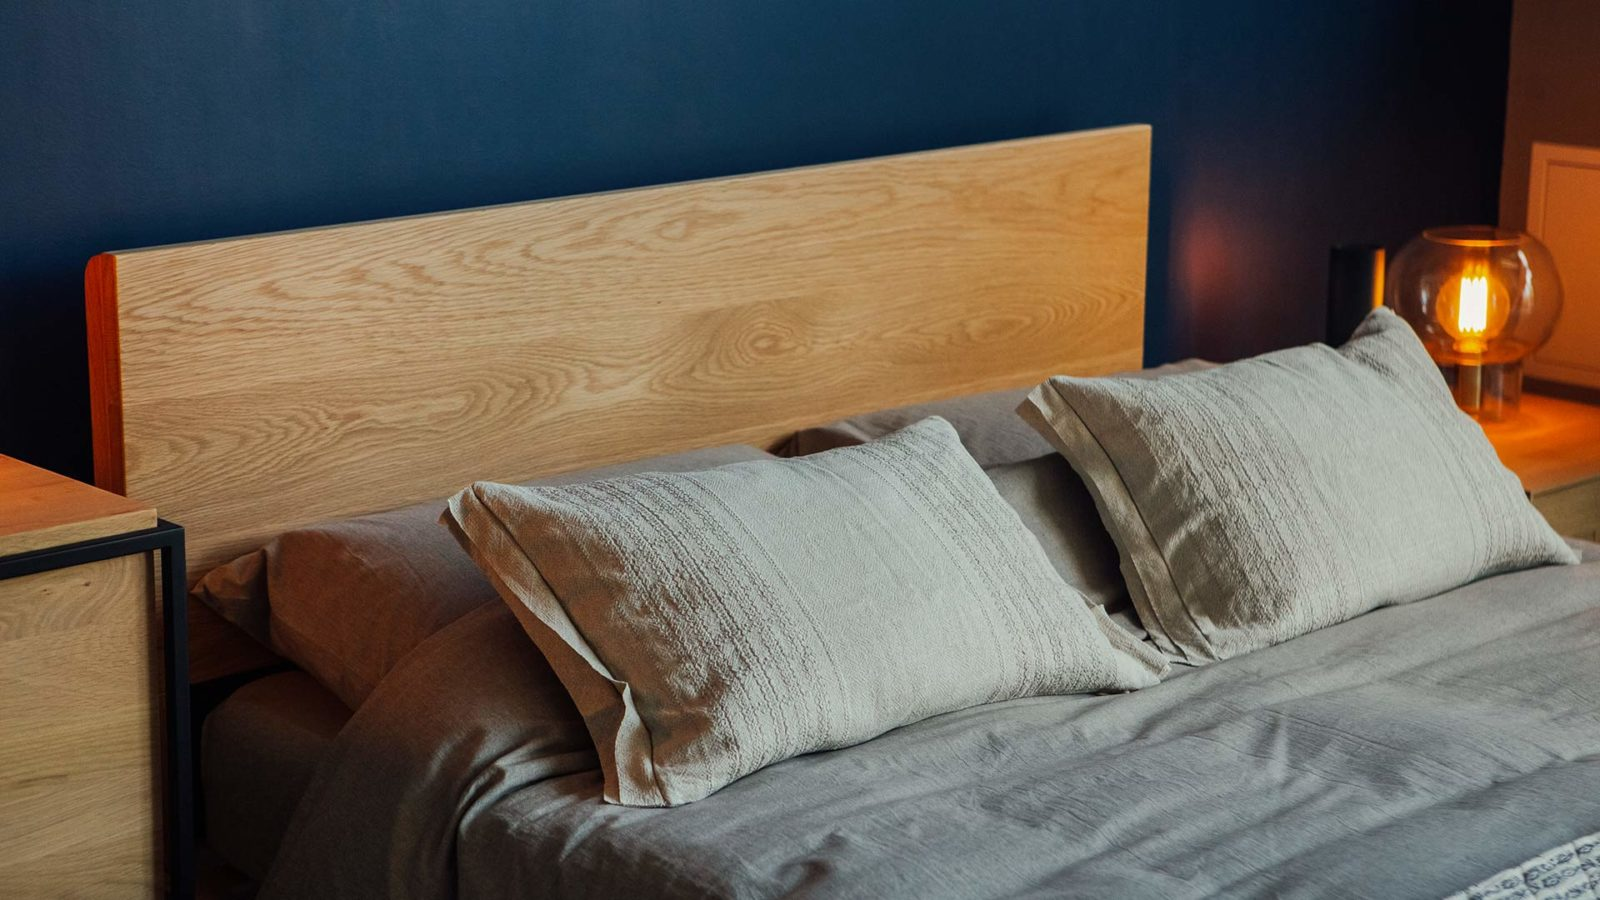 A closer view of the wooden Malabar bed headboard in Oak